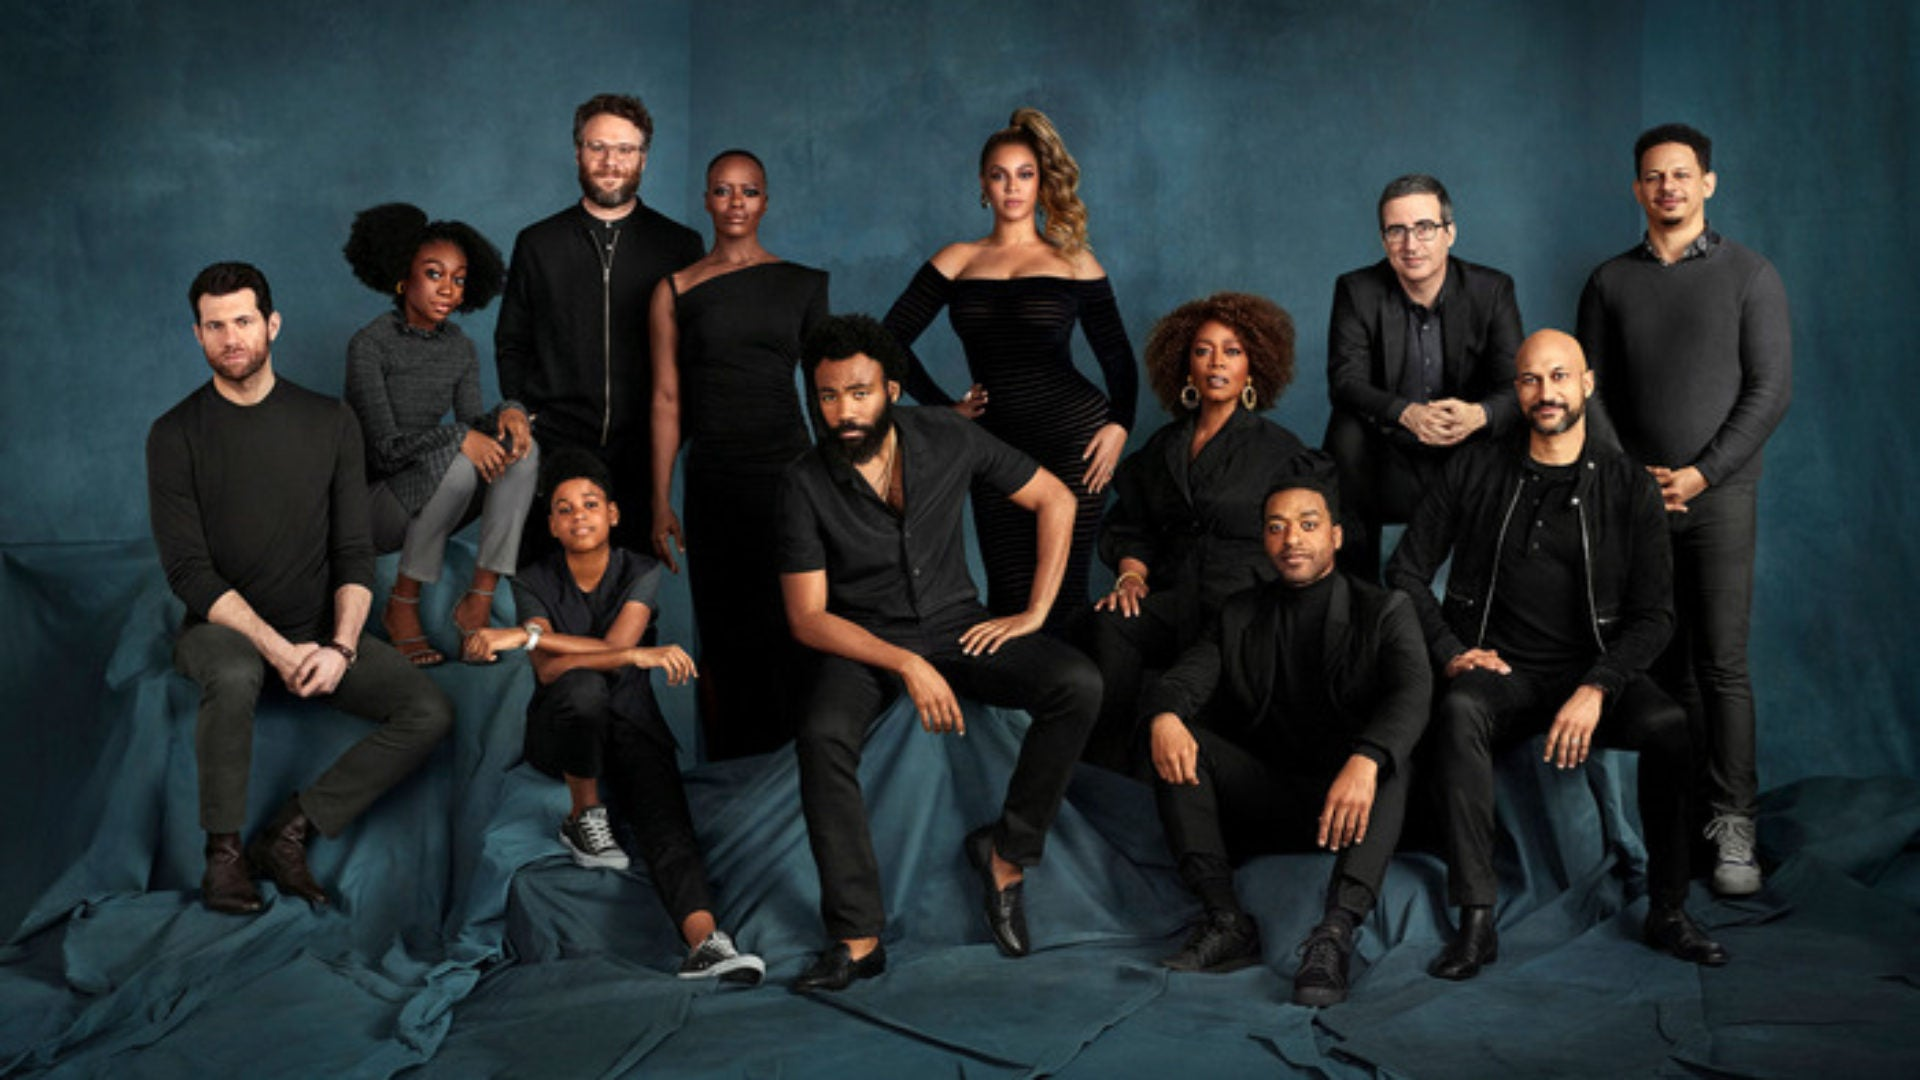 The Cast Photo Of The Upcoming 'Lion King' Is Here!